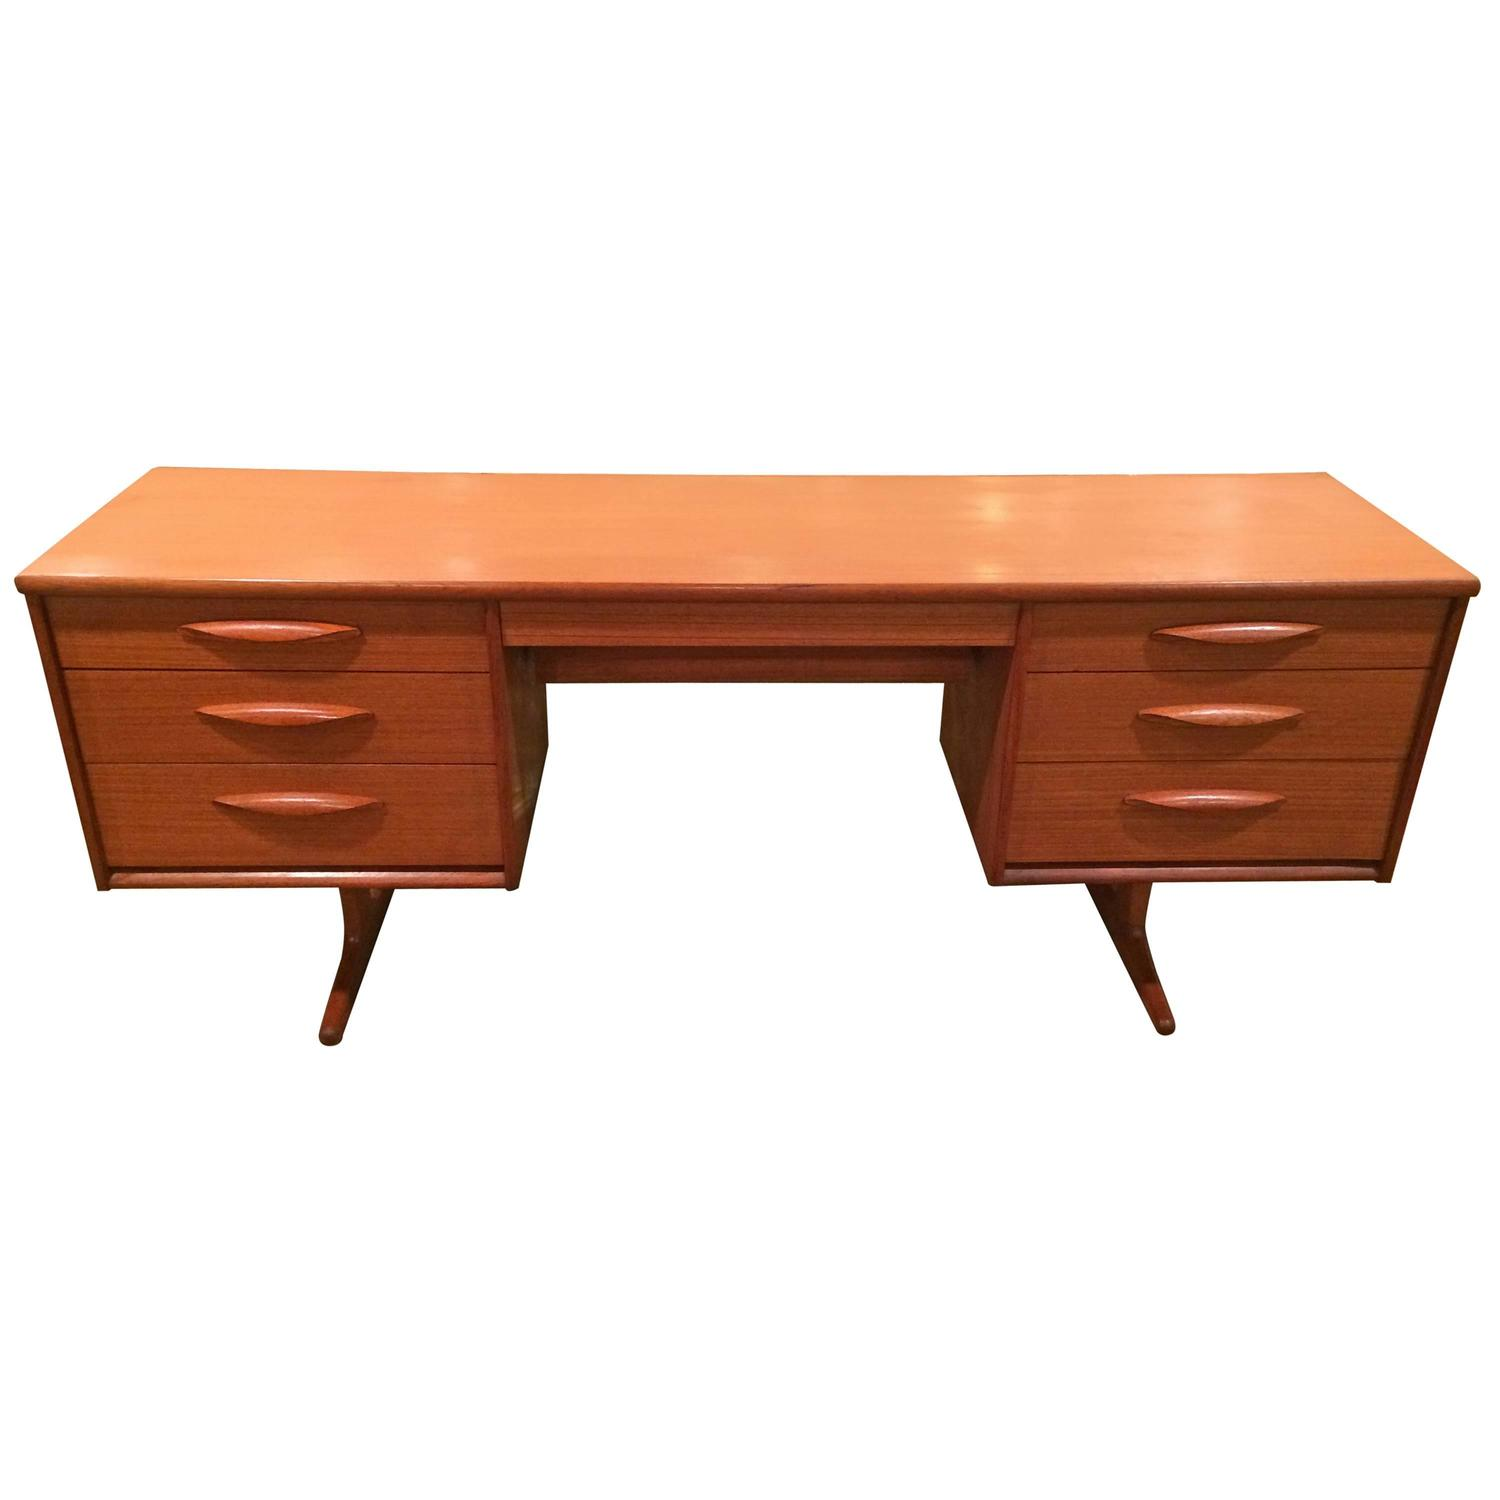 floating teak desk or vanity for sale at 1stdibs